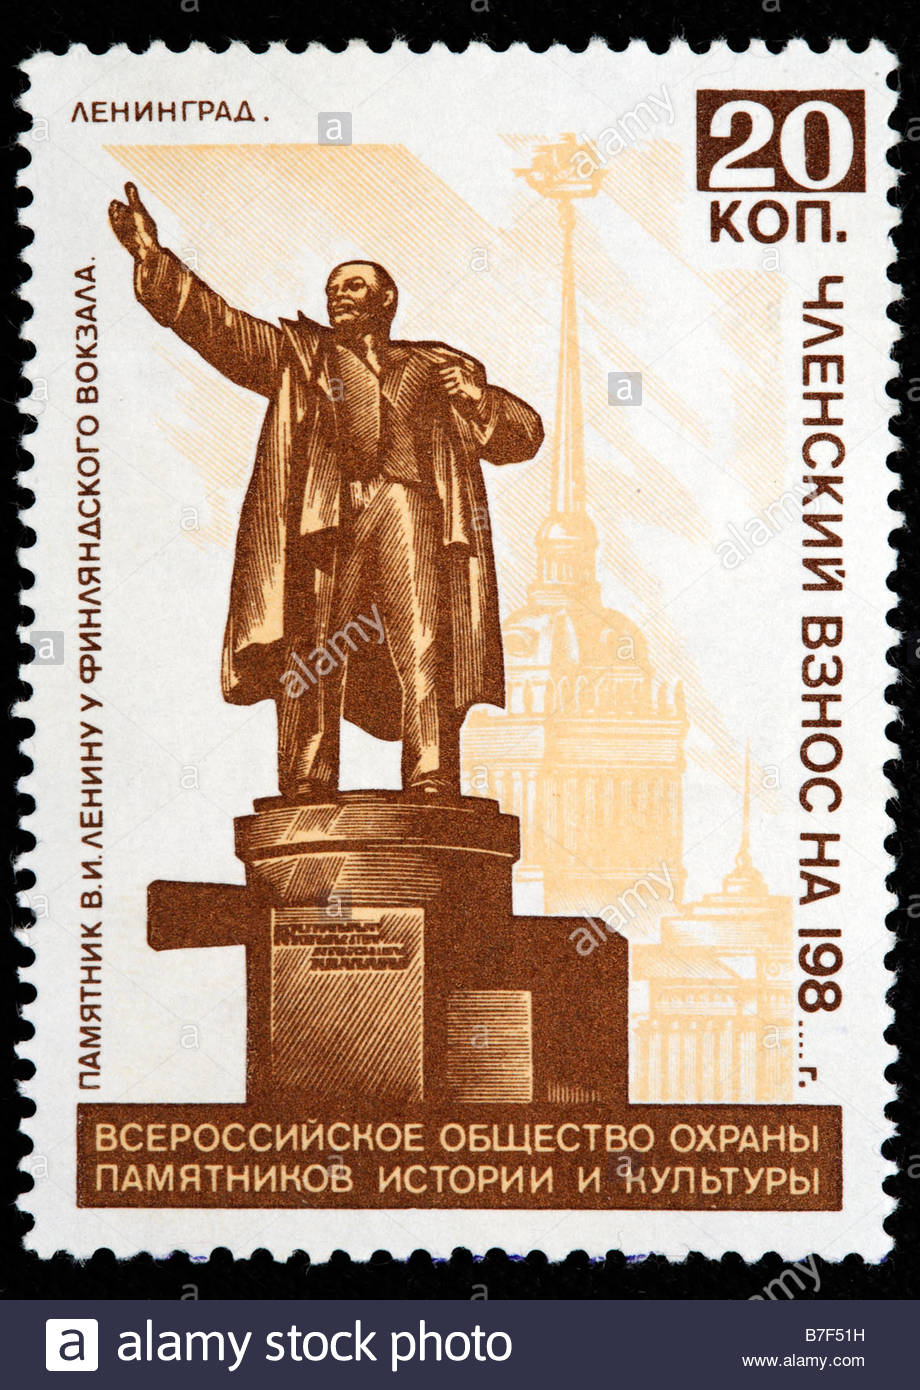 Monument to Lenin in St. Petersburg, postage stamp, USSR, 1980 - Stock Image